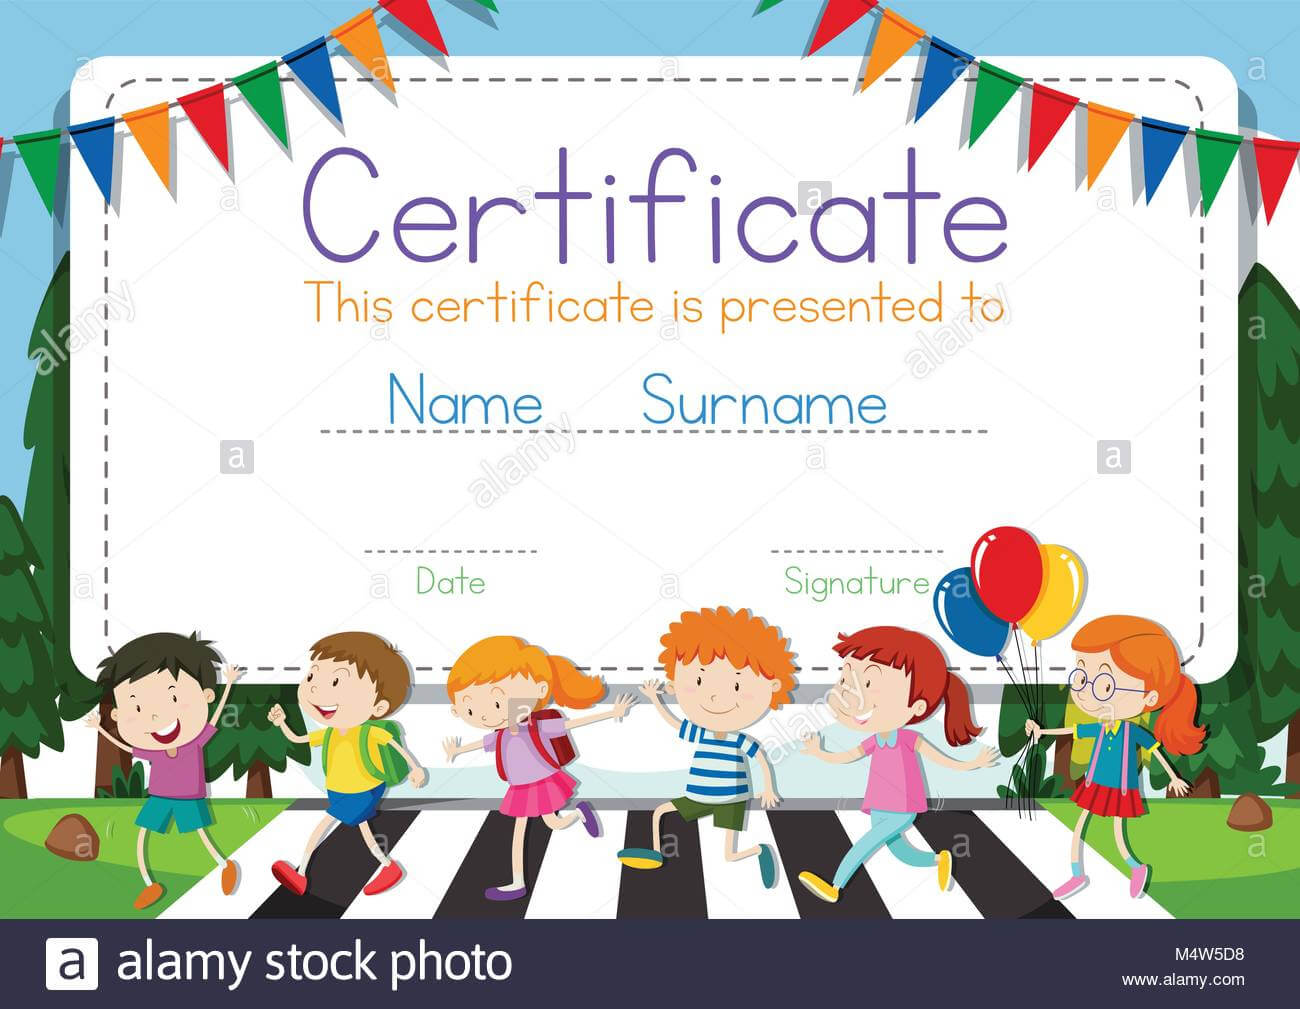 Certificate Template With Children Crossing Road Background With Children's Certificate Template